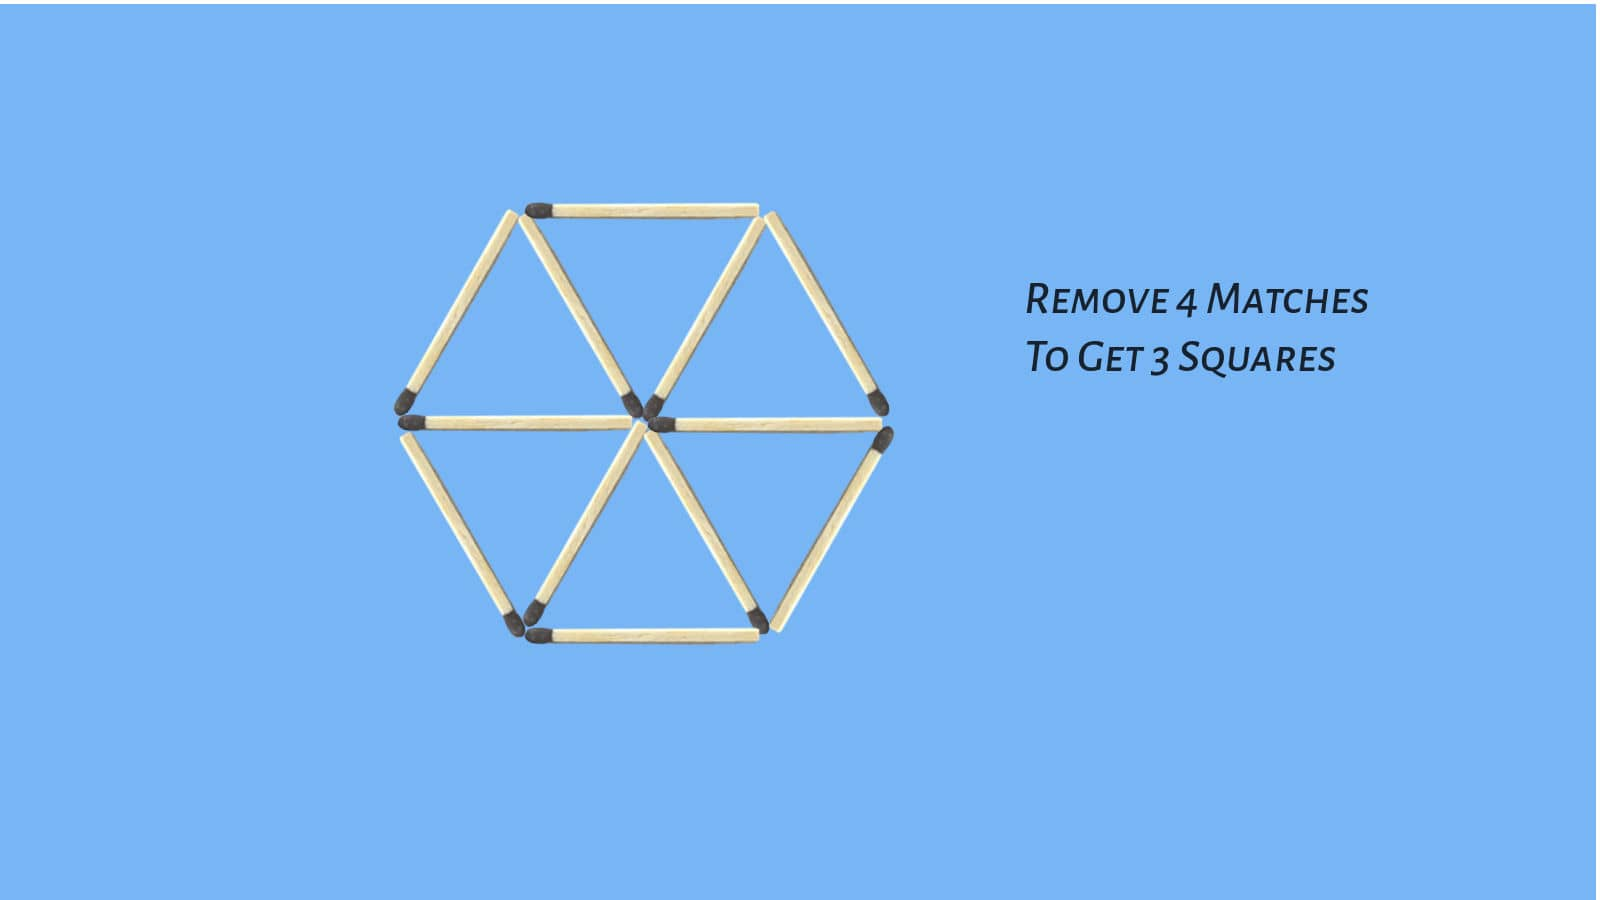 remove-4-matches-to-get-3-triangles-matchstick-puzzle.jpg